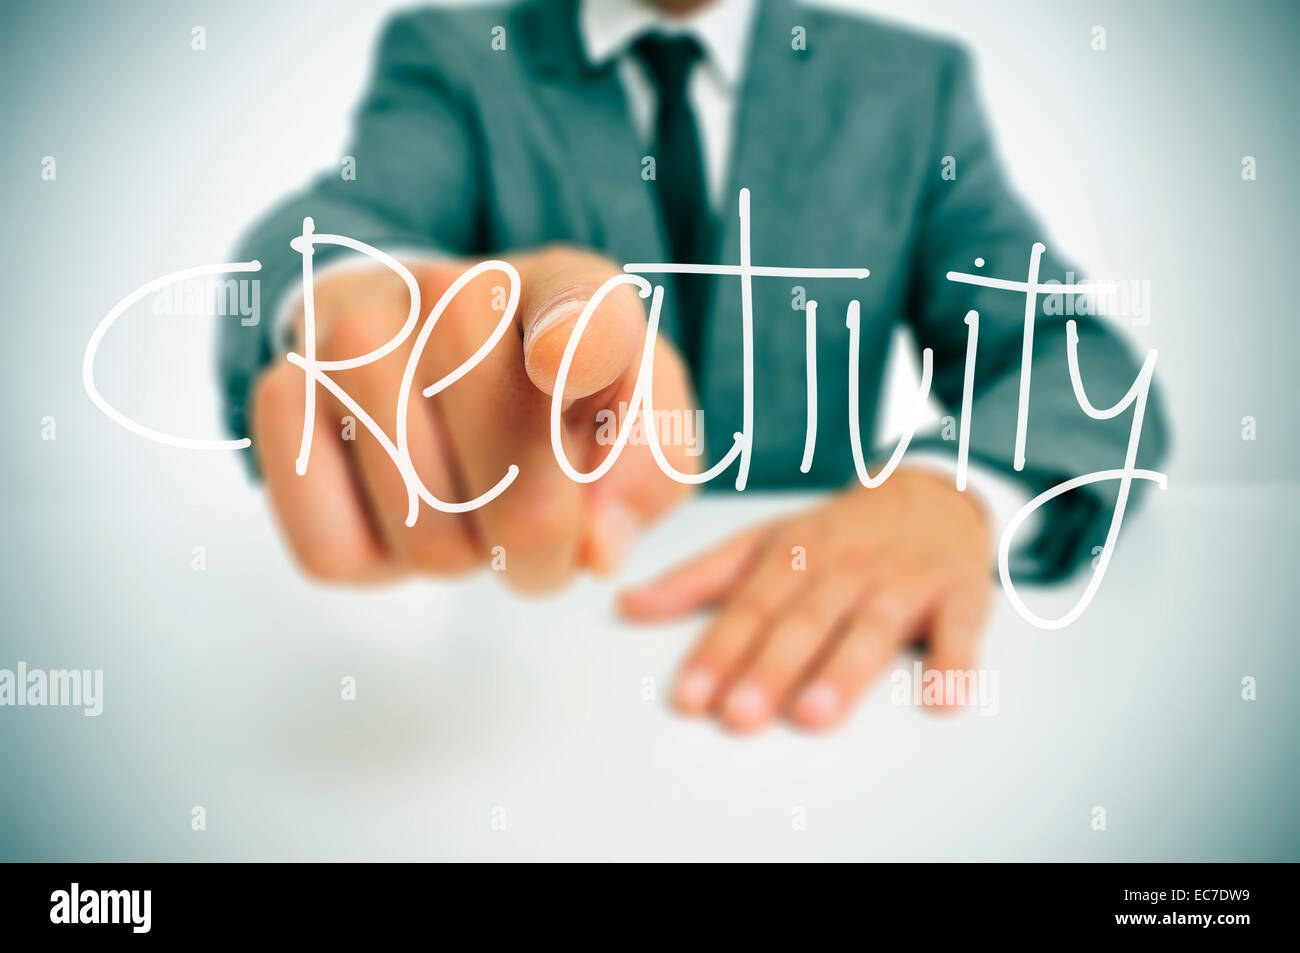 man in suit sitting in an office desk pointing the finger to the word creativity written in the foreground - Stock Image